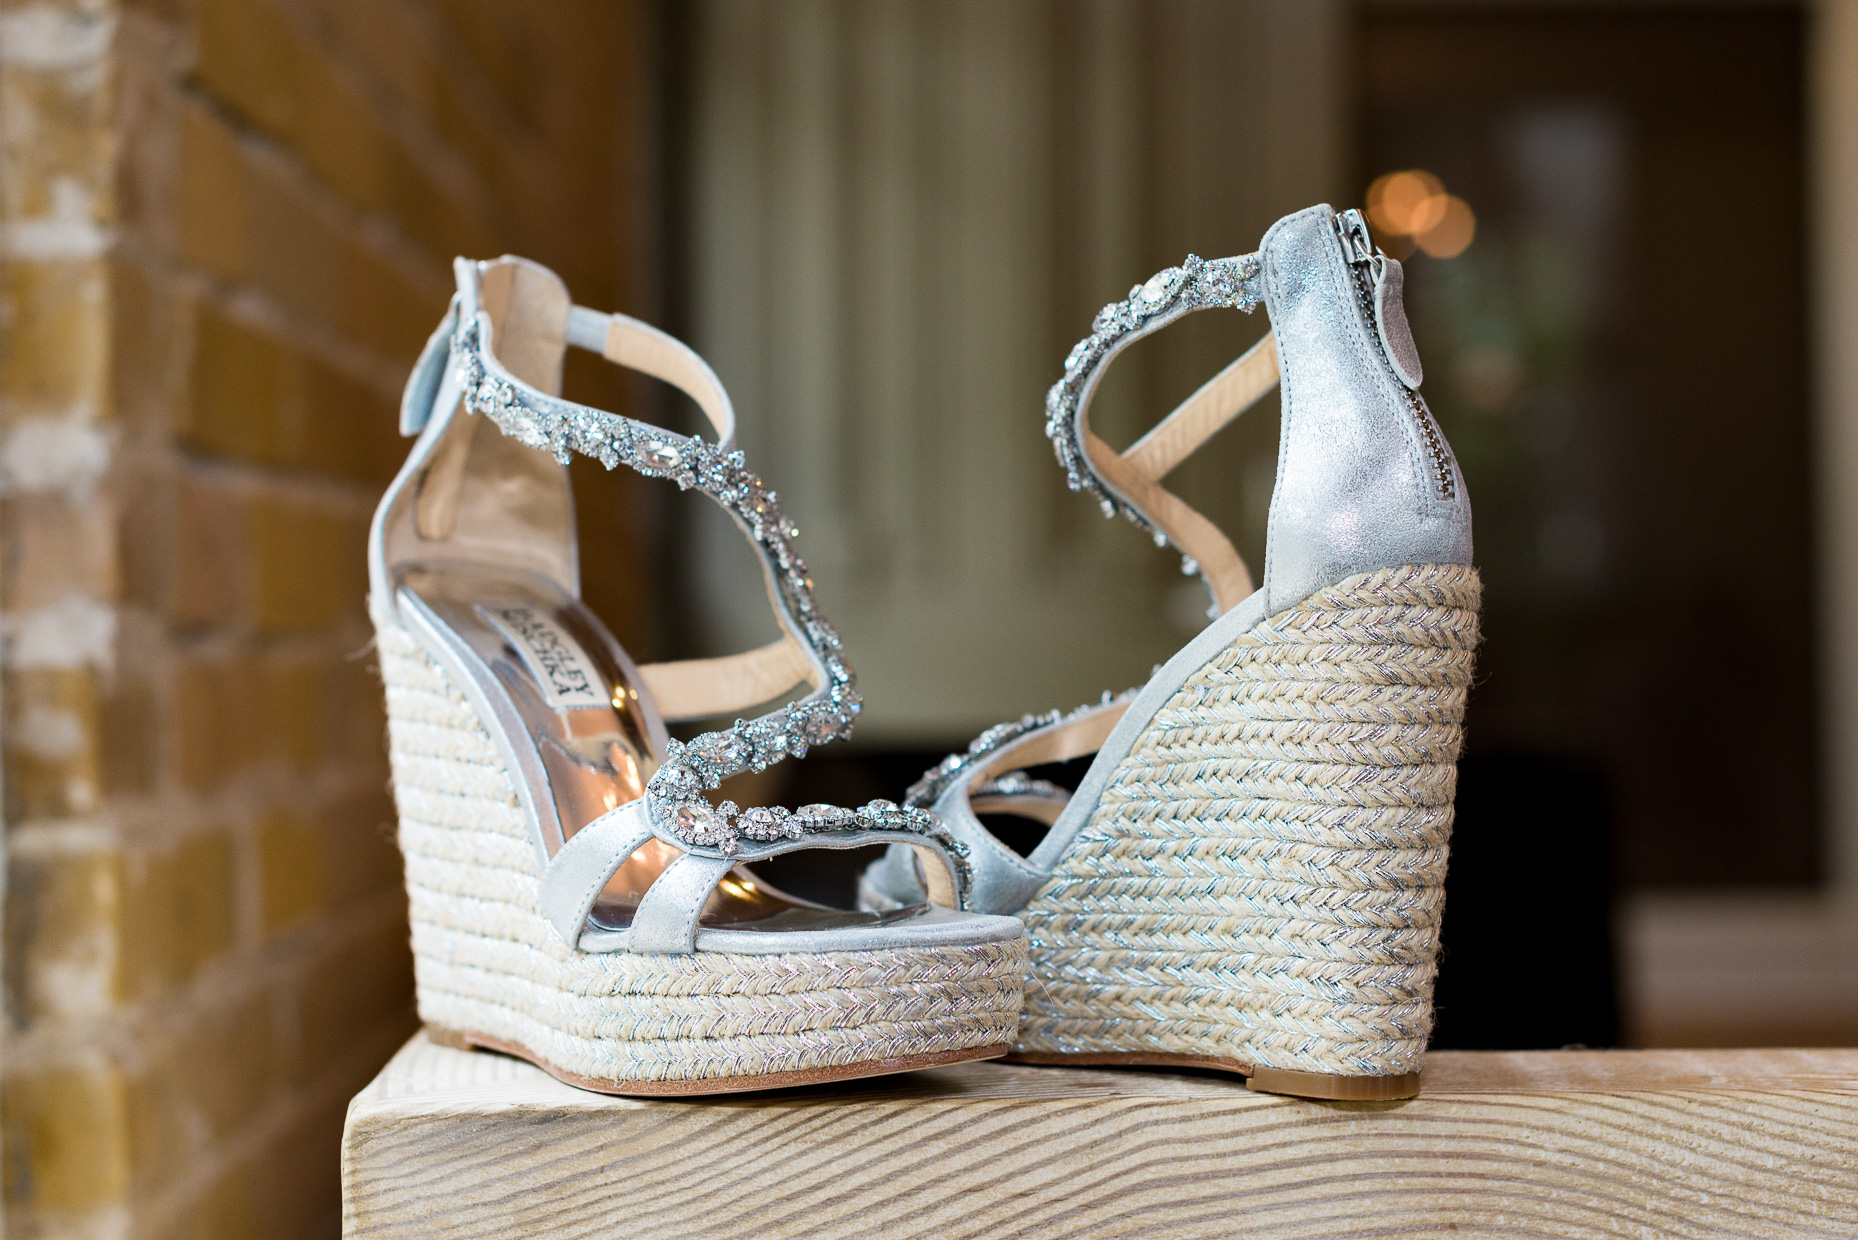 Austin-Wedding-Photographer-shoes-bride-badgley-mischka-rhinestone-silver-san-antonio-tx